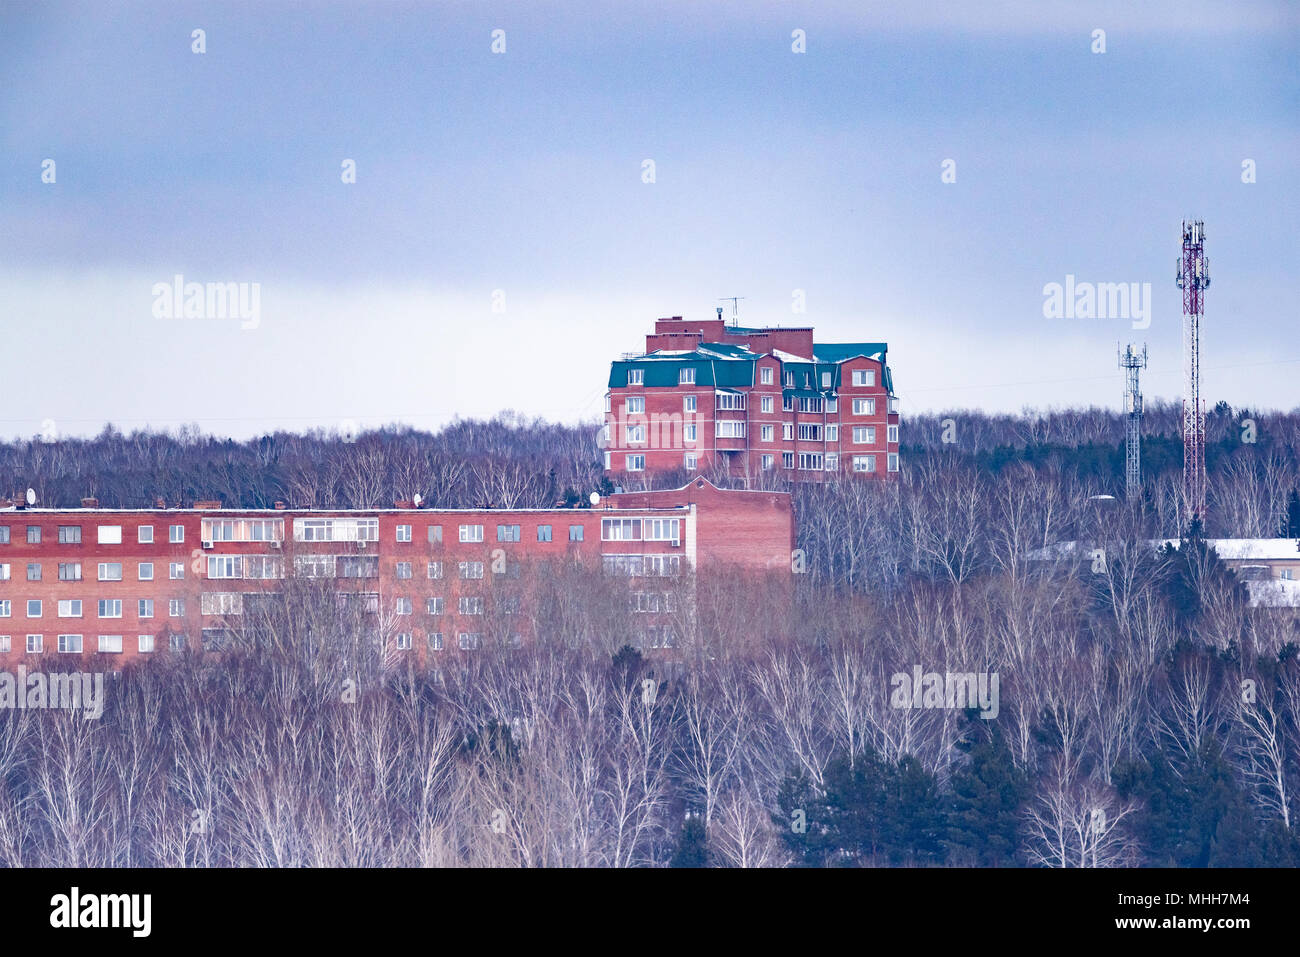 Multi-storey construction outside the city. Residential area among the forest. - Stock Image